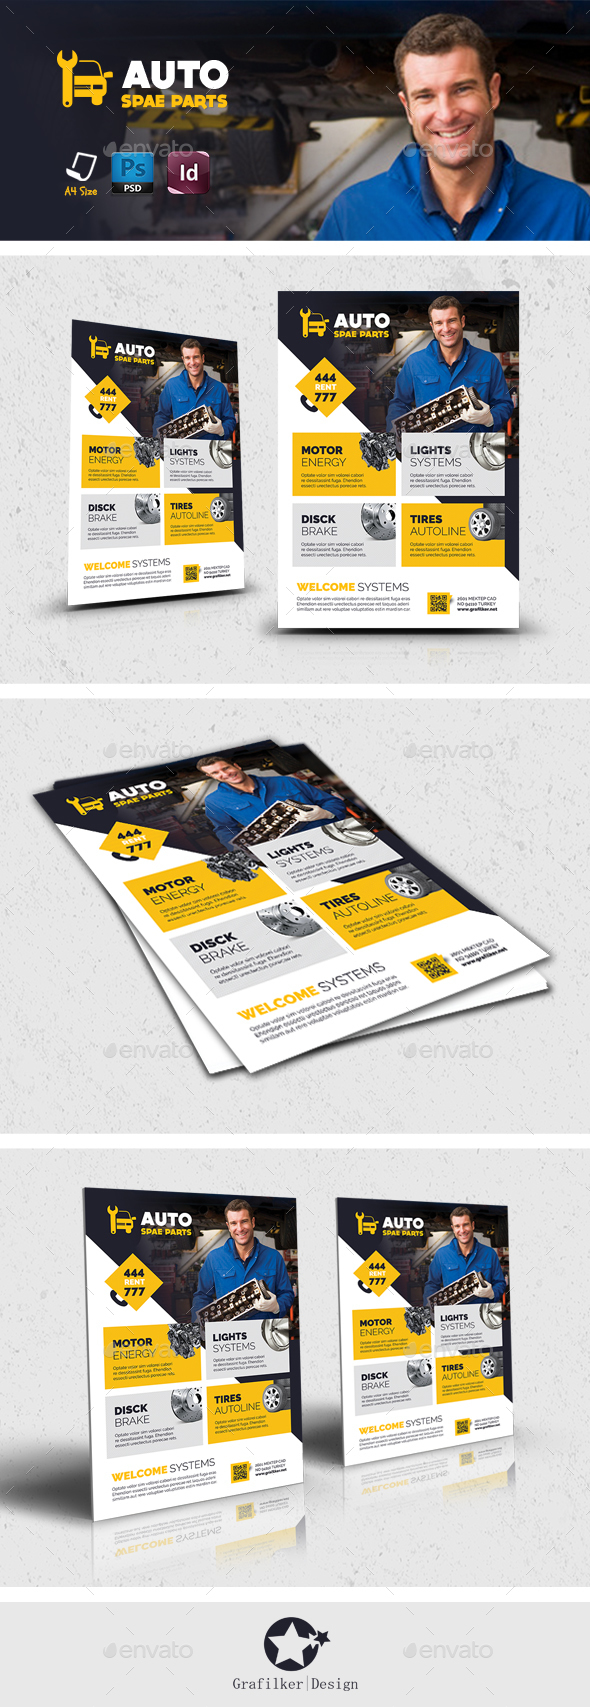 Auto Spare Part Flyer Templates - Corporate Flyers